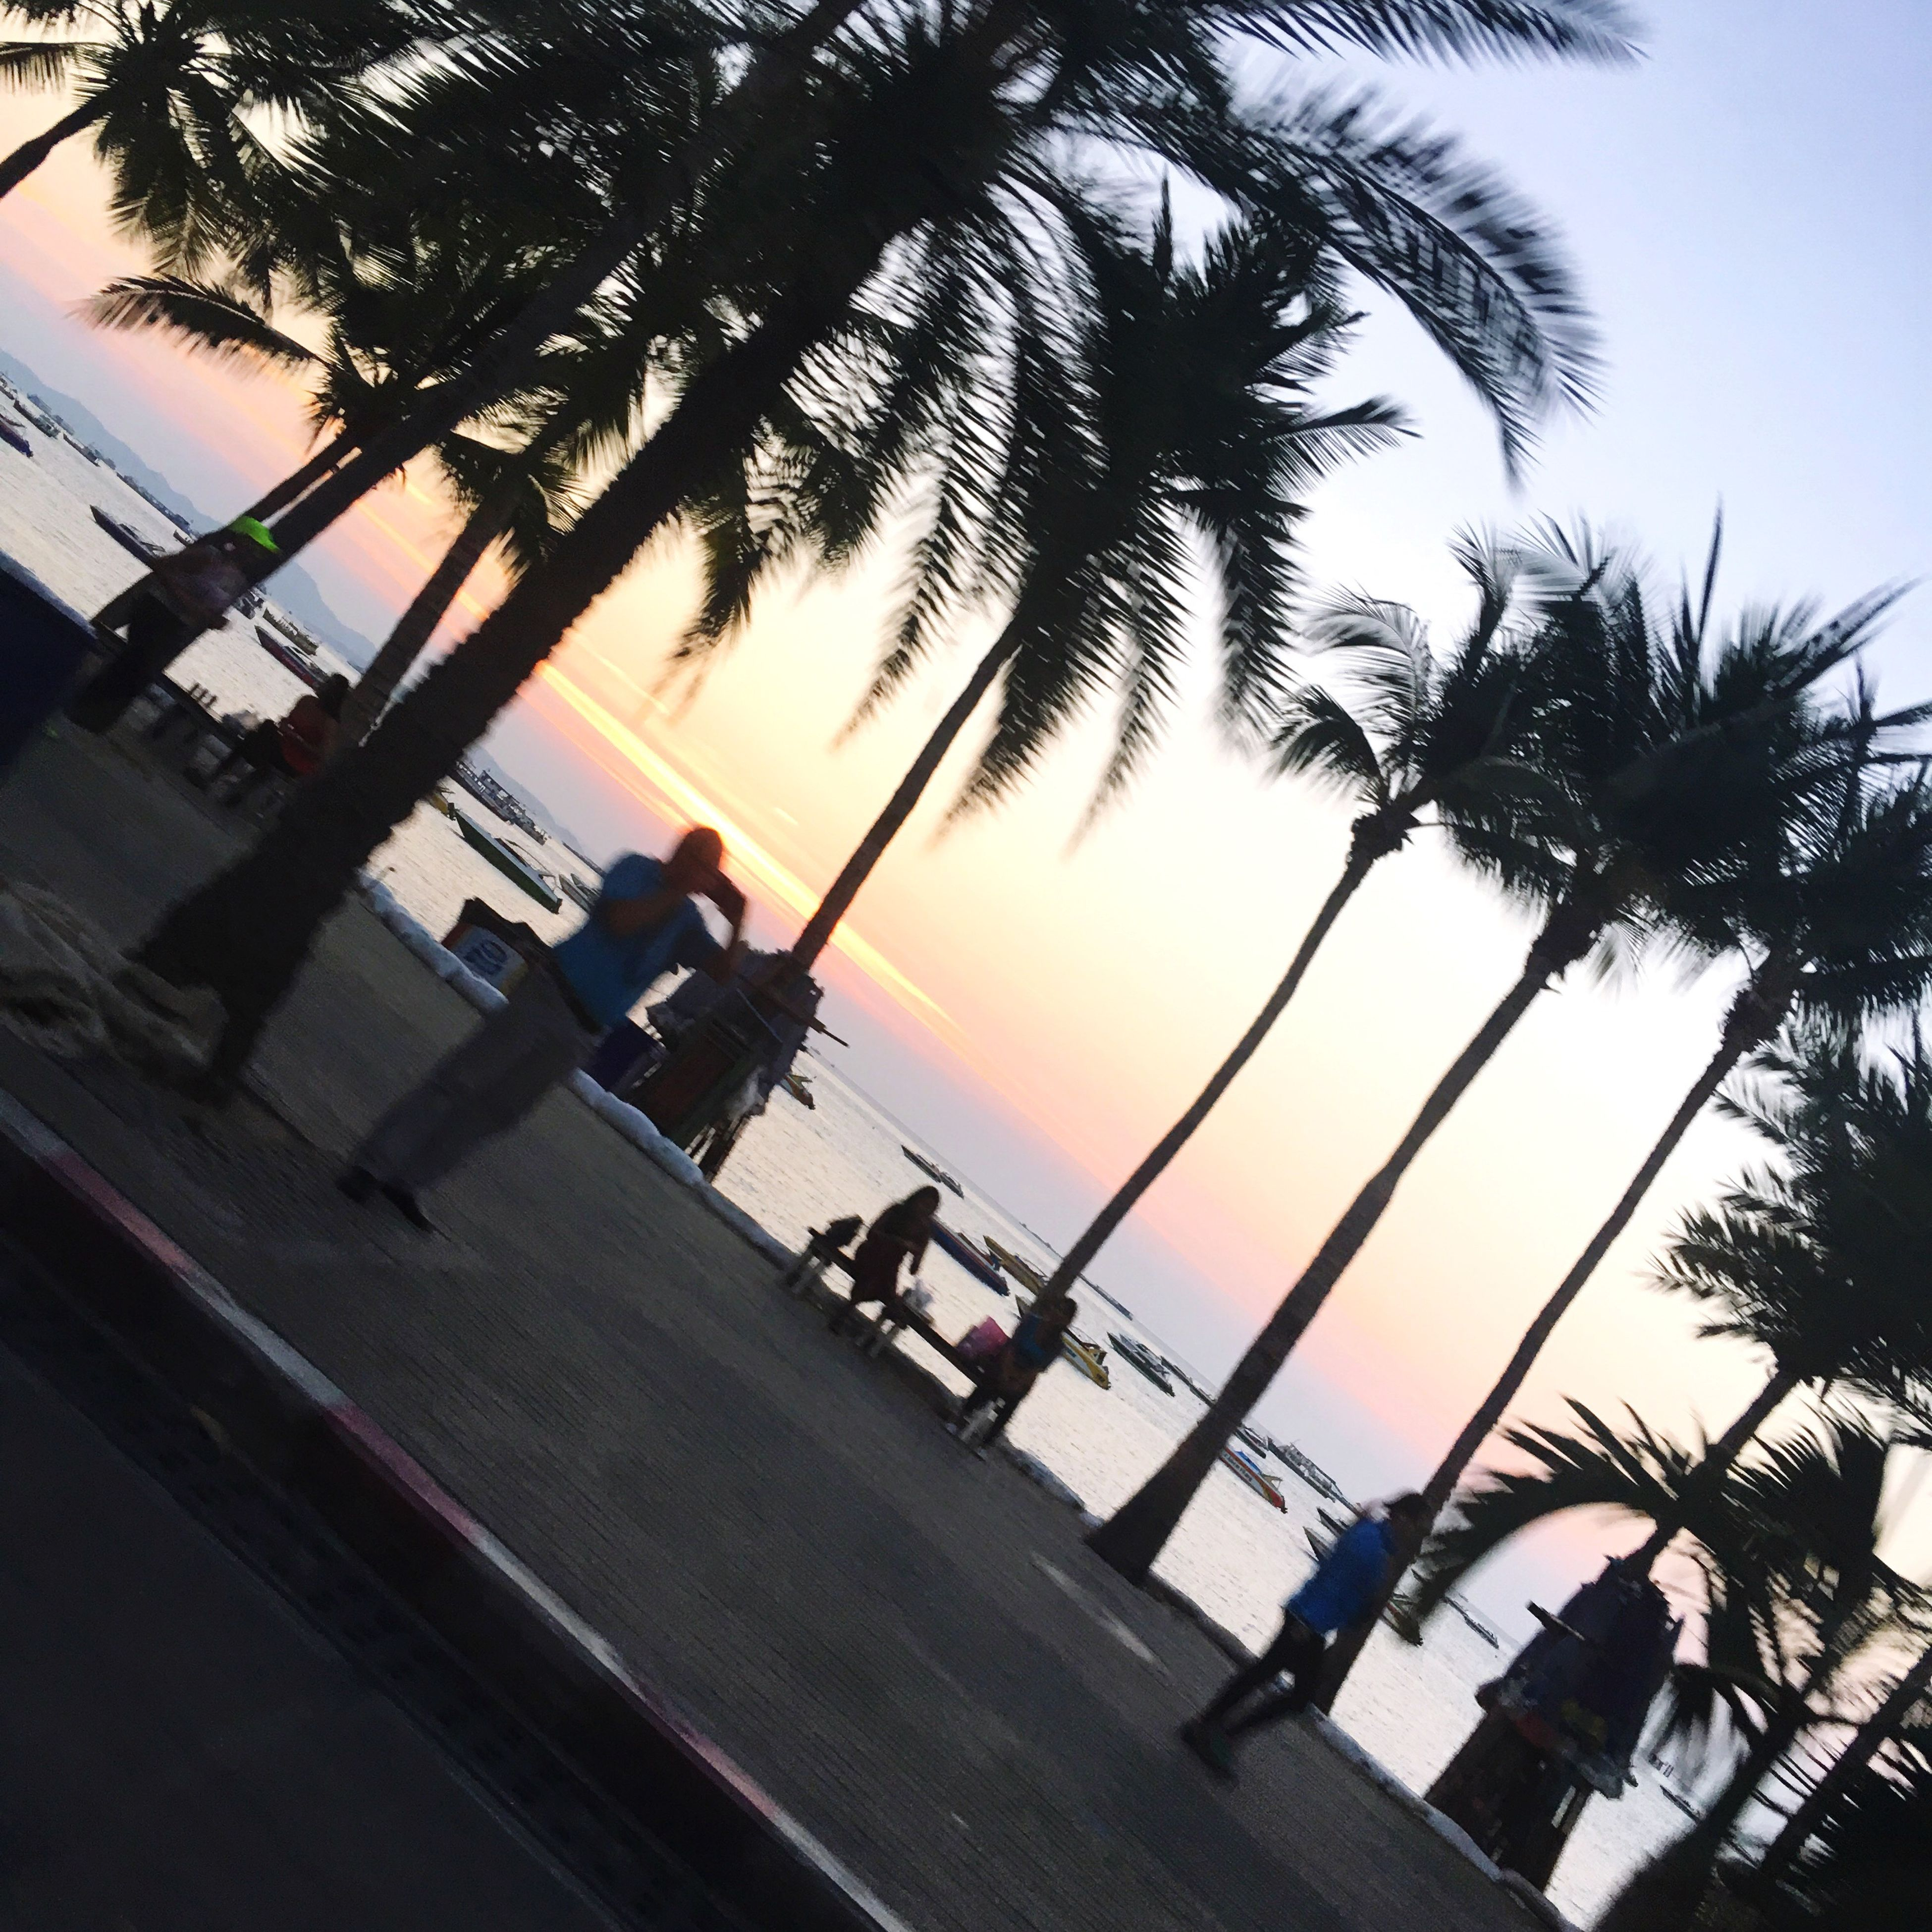 sunset, sky, tree, palm tree, sea, building exterior, built structure, outdoors, no people, city, architecture, beach, water, nature, day